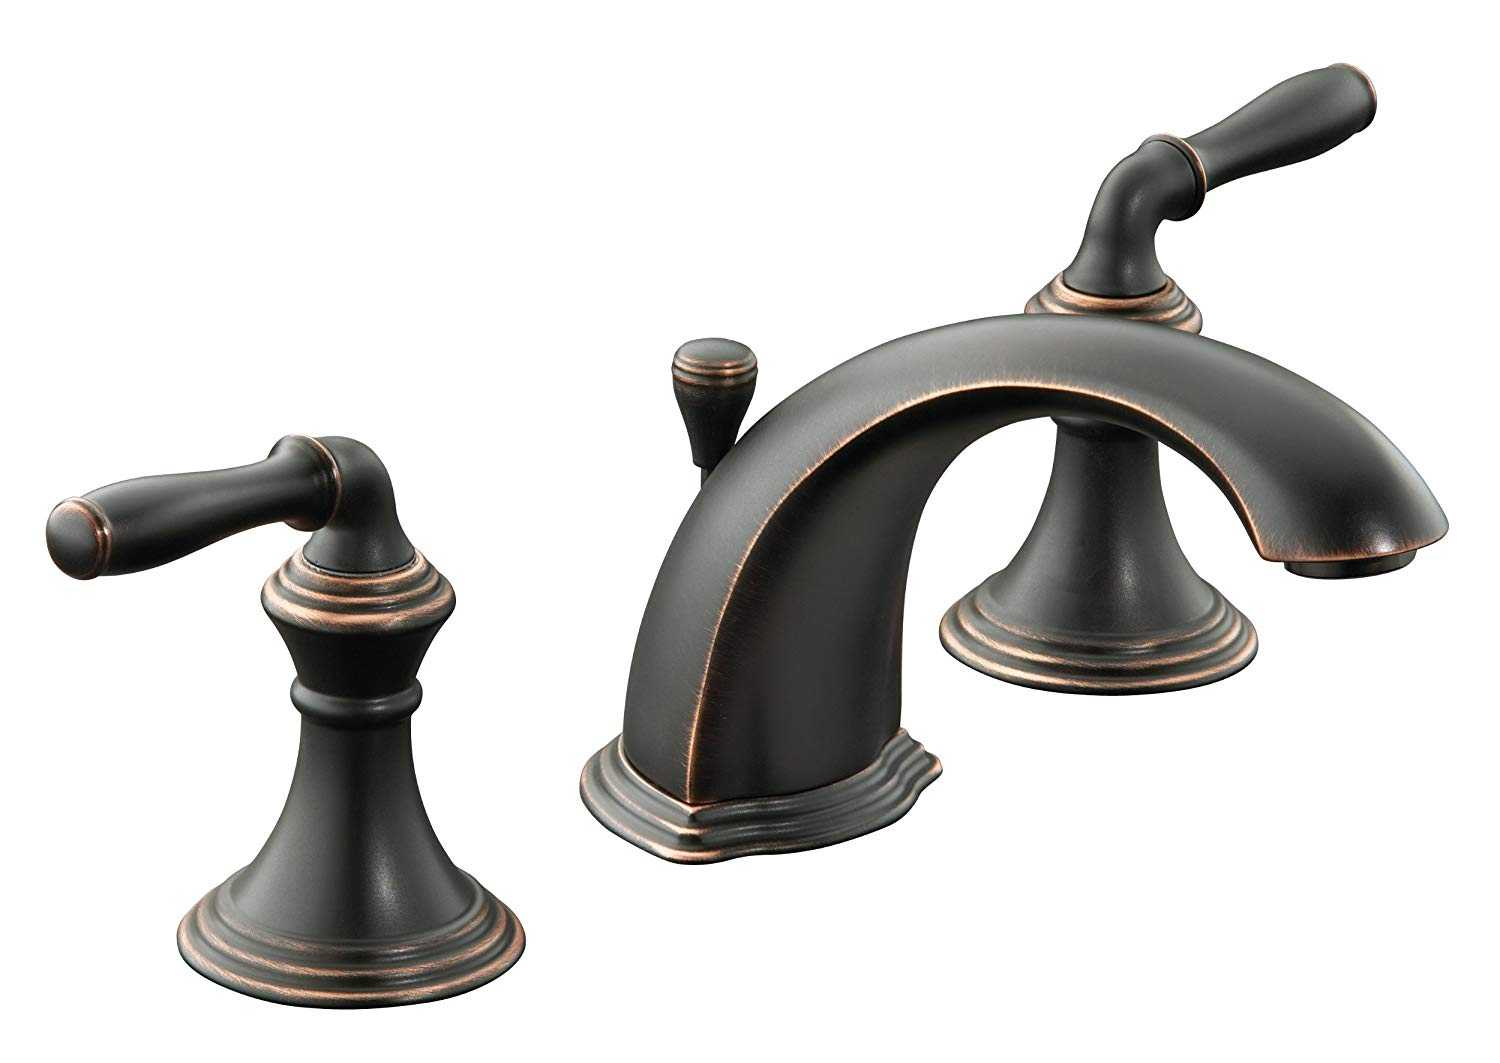 Modern Oil Rubbed Bronze Bathroom Faucet & Complete Ideas Example for Bathroom Faucet Oil Rubbed Bronze